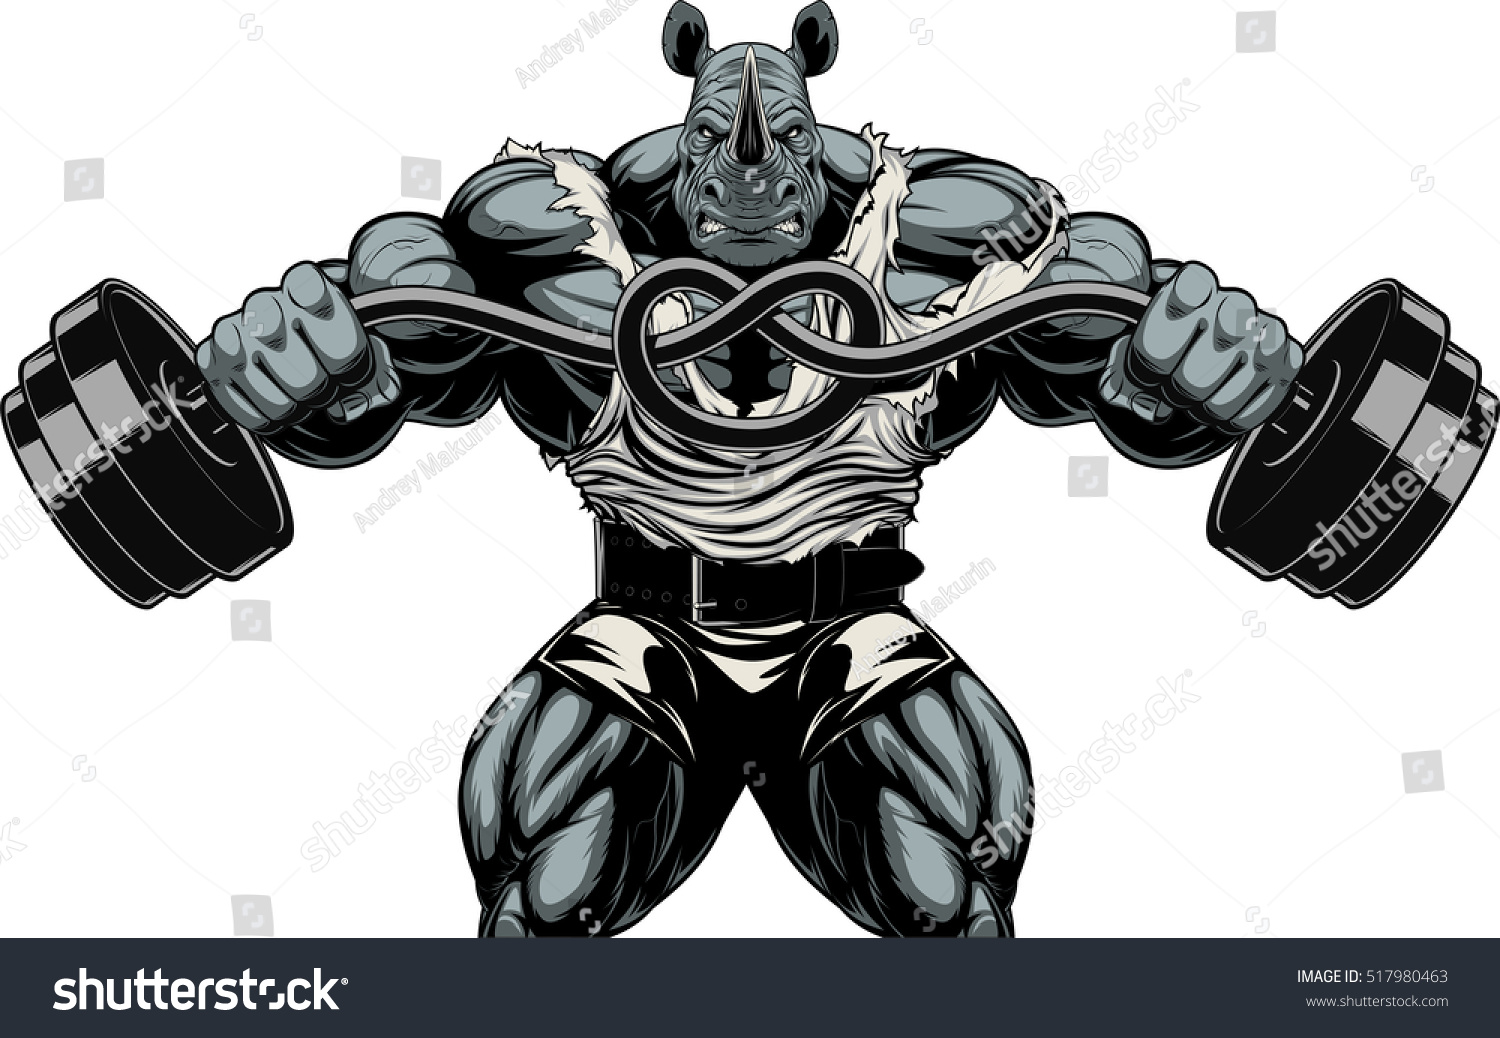 Vector illustration a ferocious rhino bodybuilder tied barbell in a knot